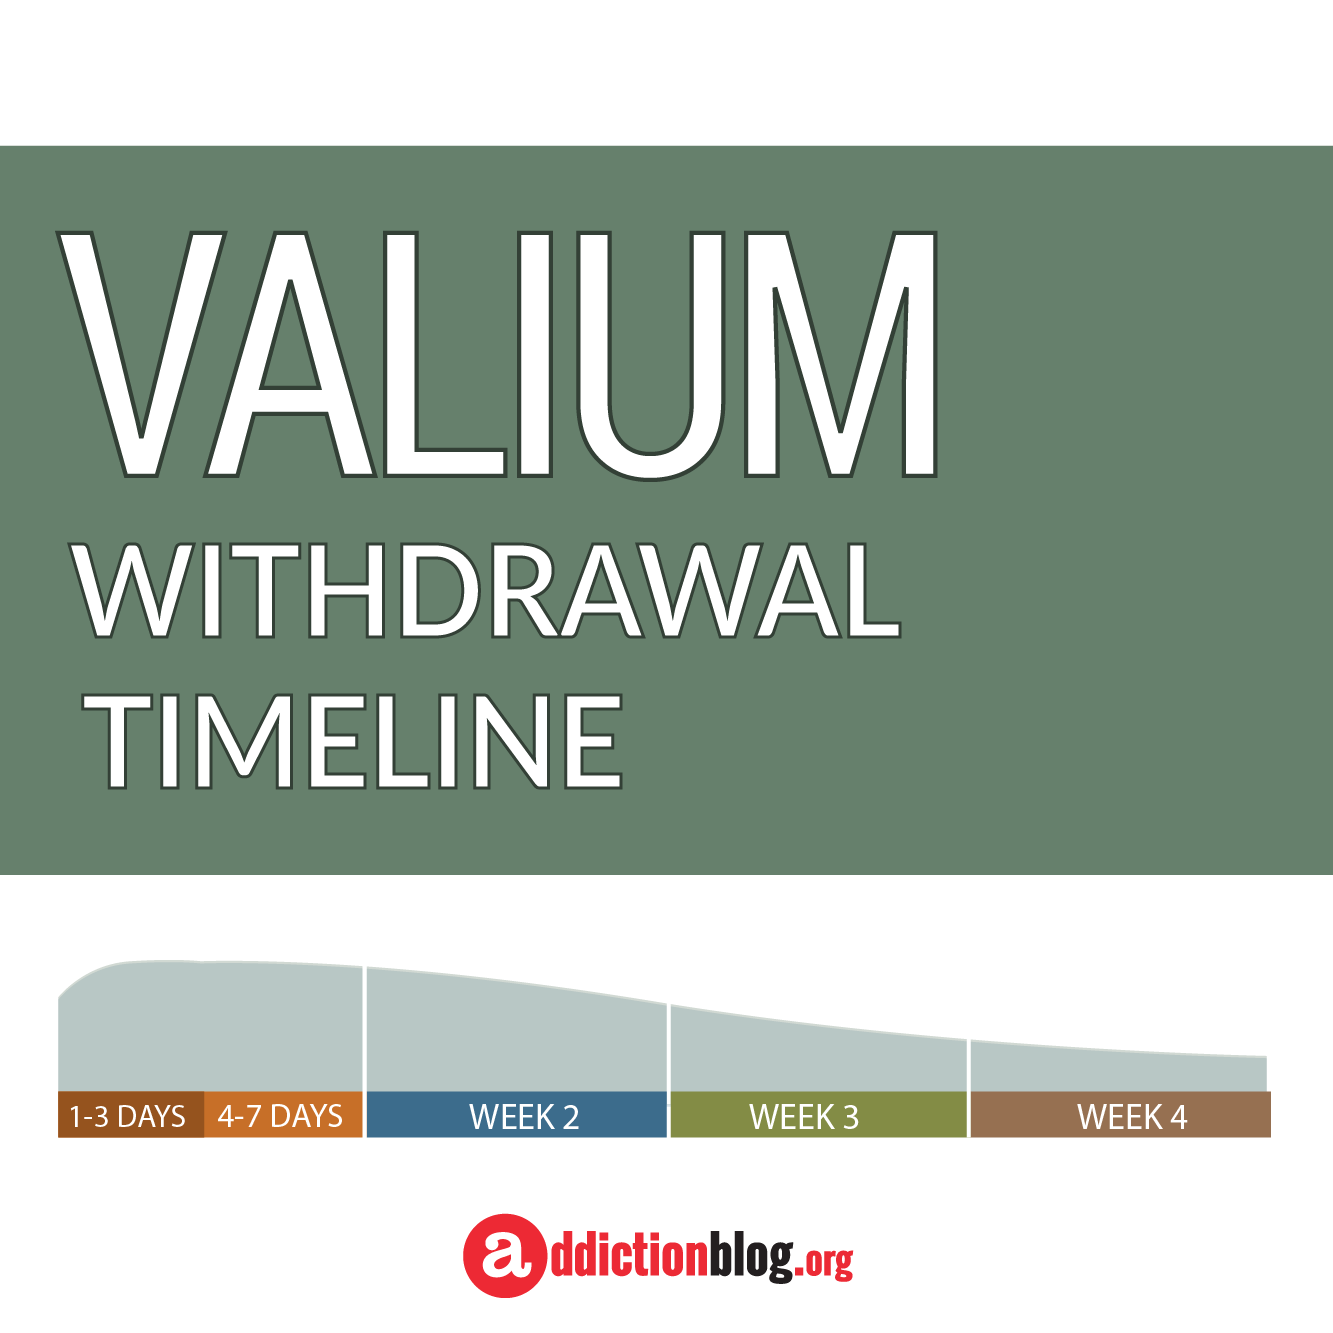 The Valium Withdrawal Timeline and Intensity Chart